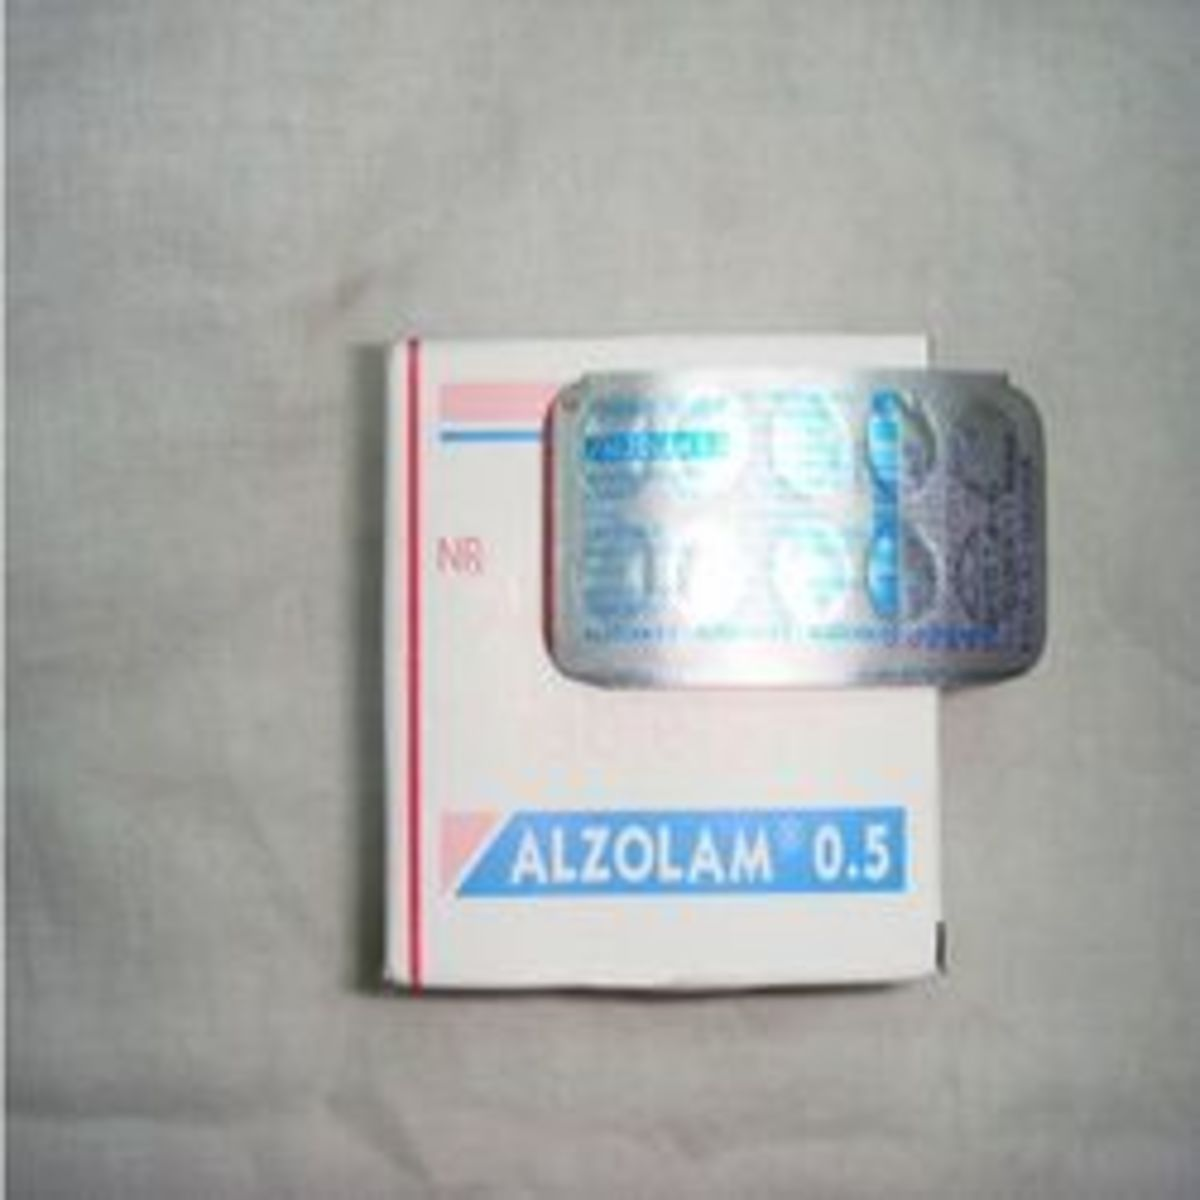 Alzolam pack